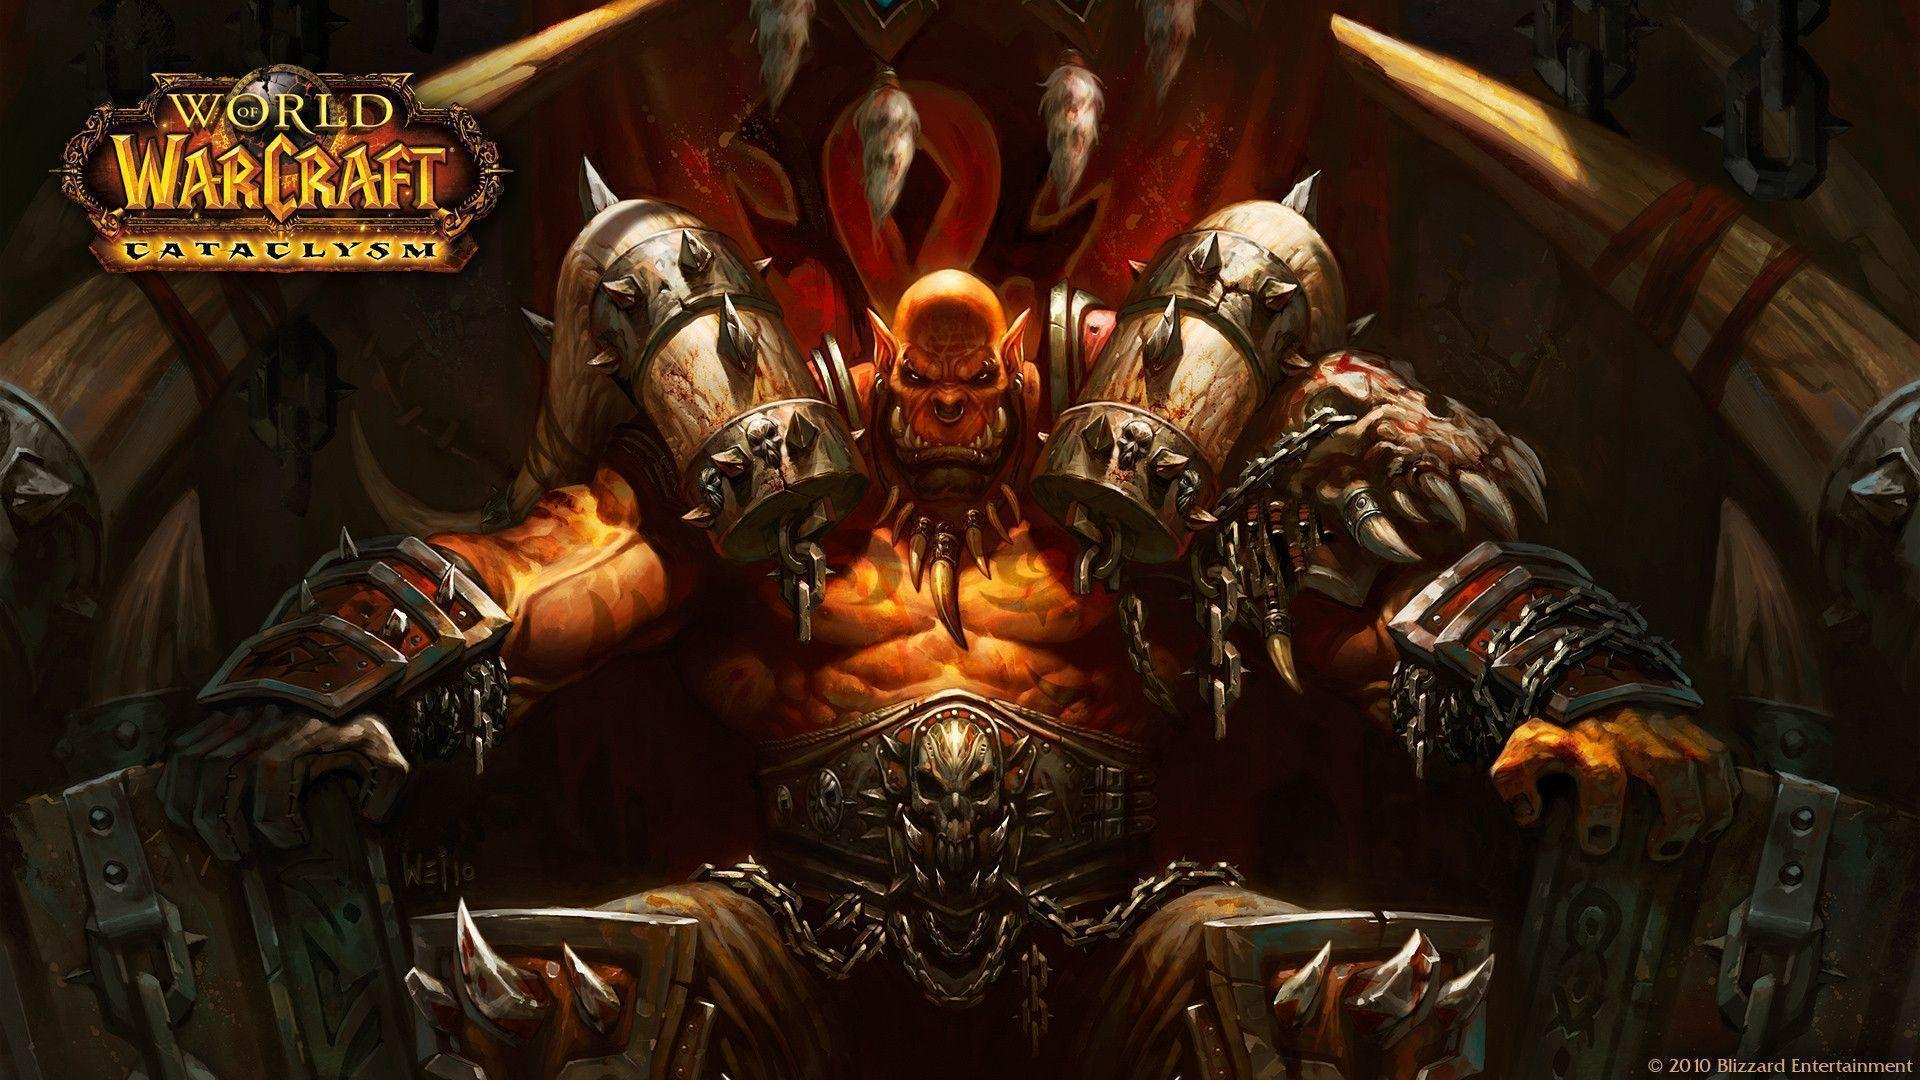 World of Warcraft Wallpapers 8 252366 Image HD Wallpapers